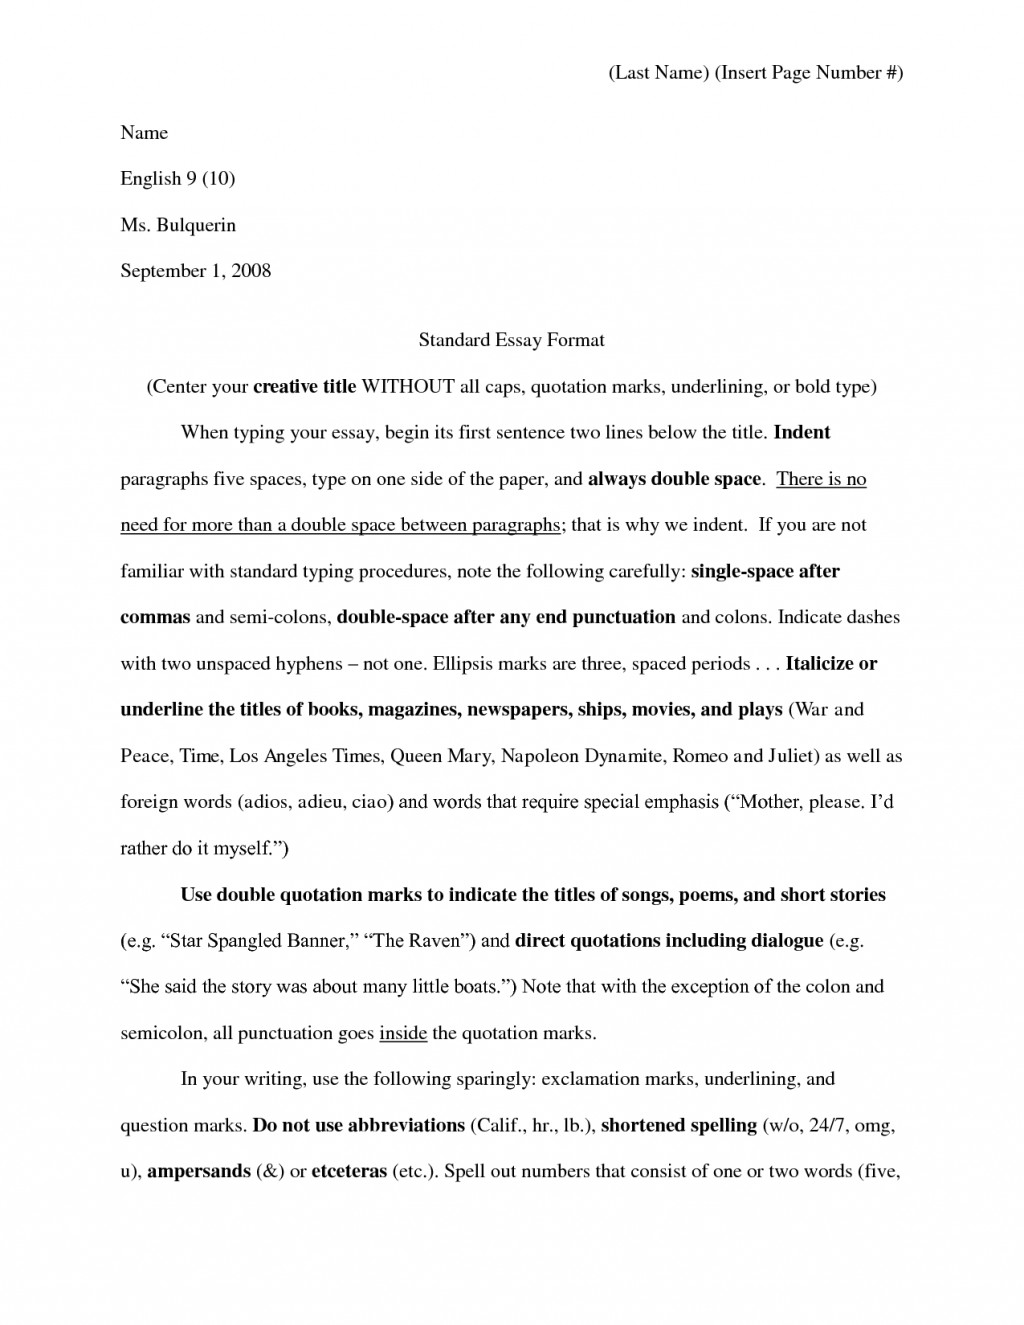 007 Essay Example Singular 5 Paragraph Outline Template Printable Topics 4th Grade For High School Large